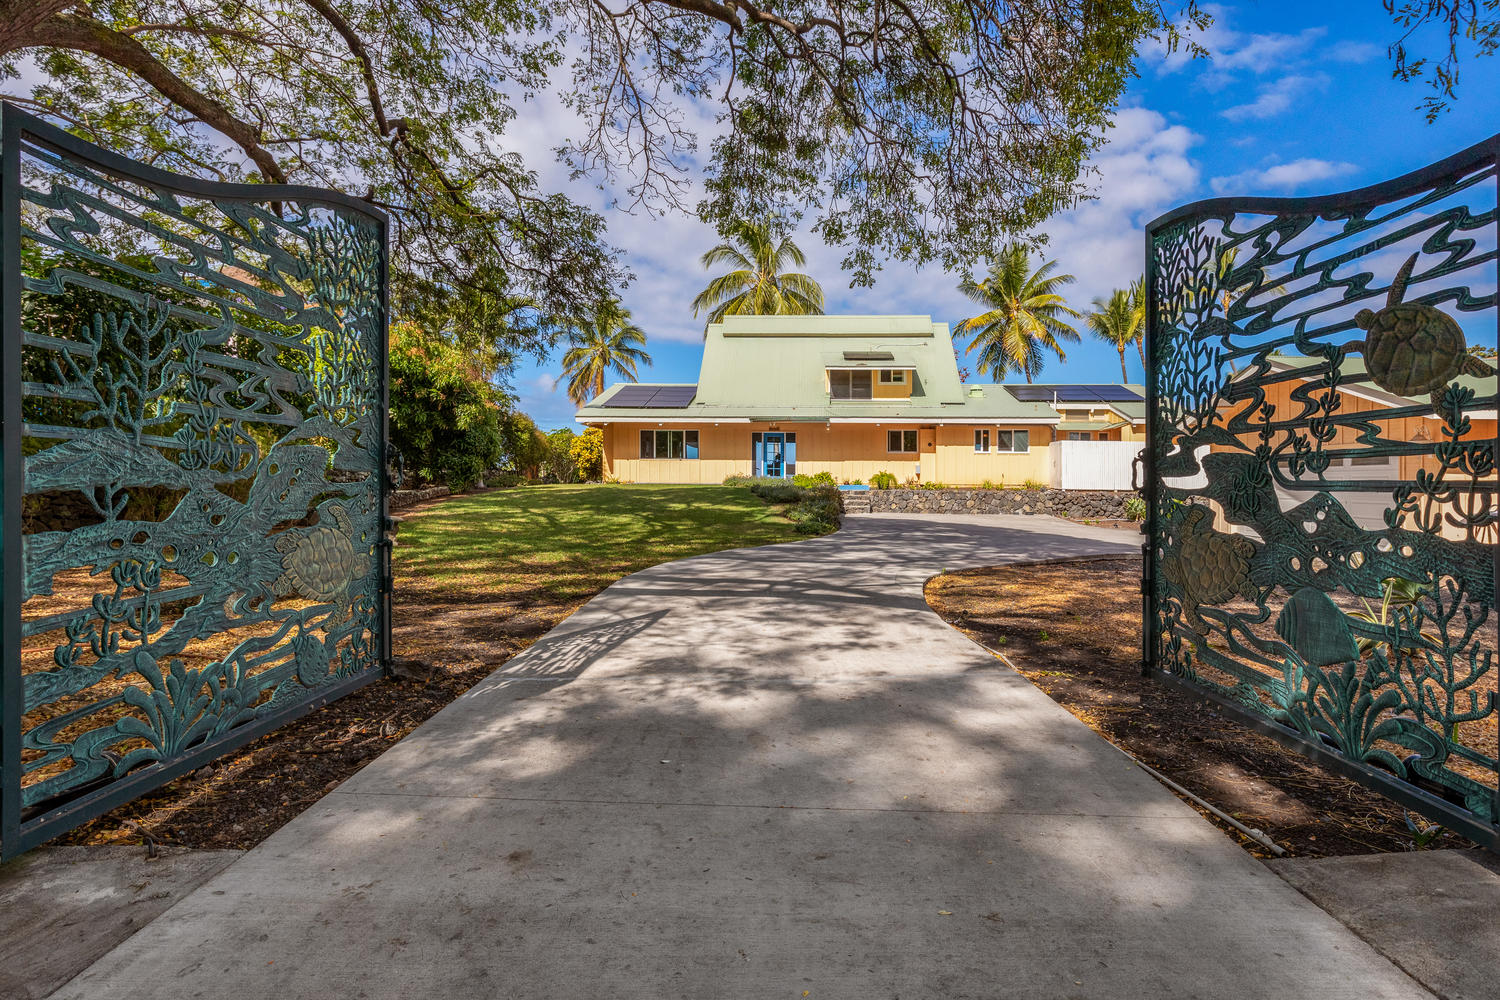 Artistic custom gates open to this  home  set directly on scenic – and historic – Kealakekua Bay in South Kona.